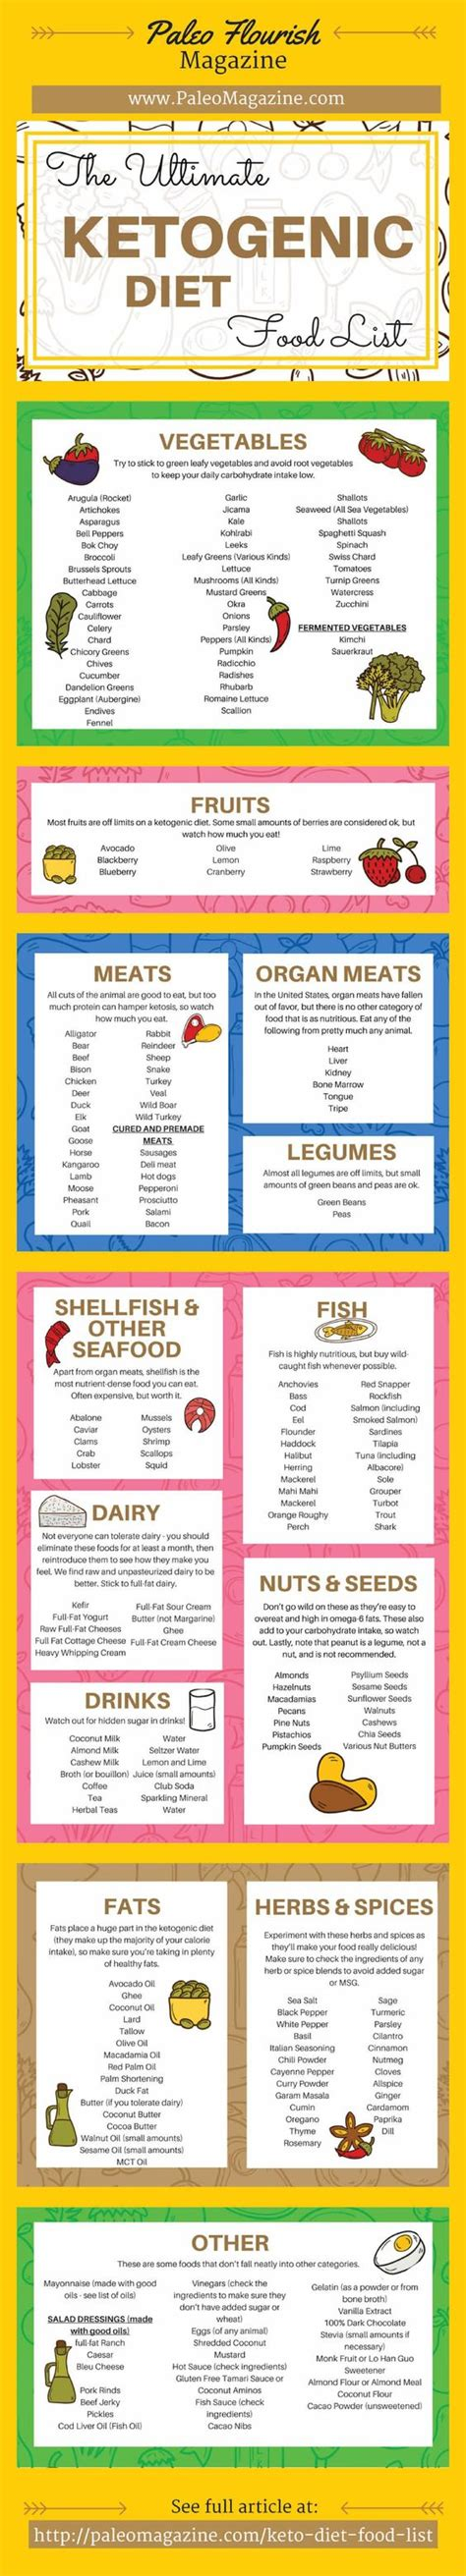 ketogenic diet food list what are keto foods pdf diet food list ketogenic